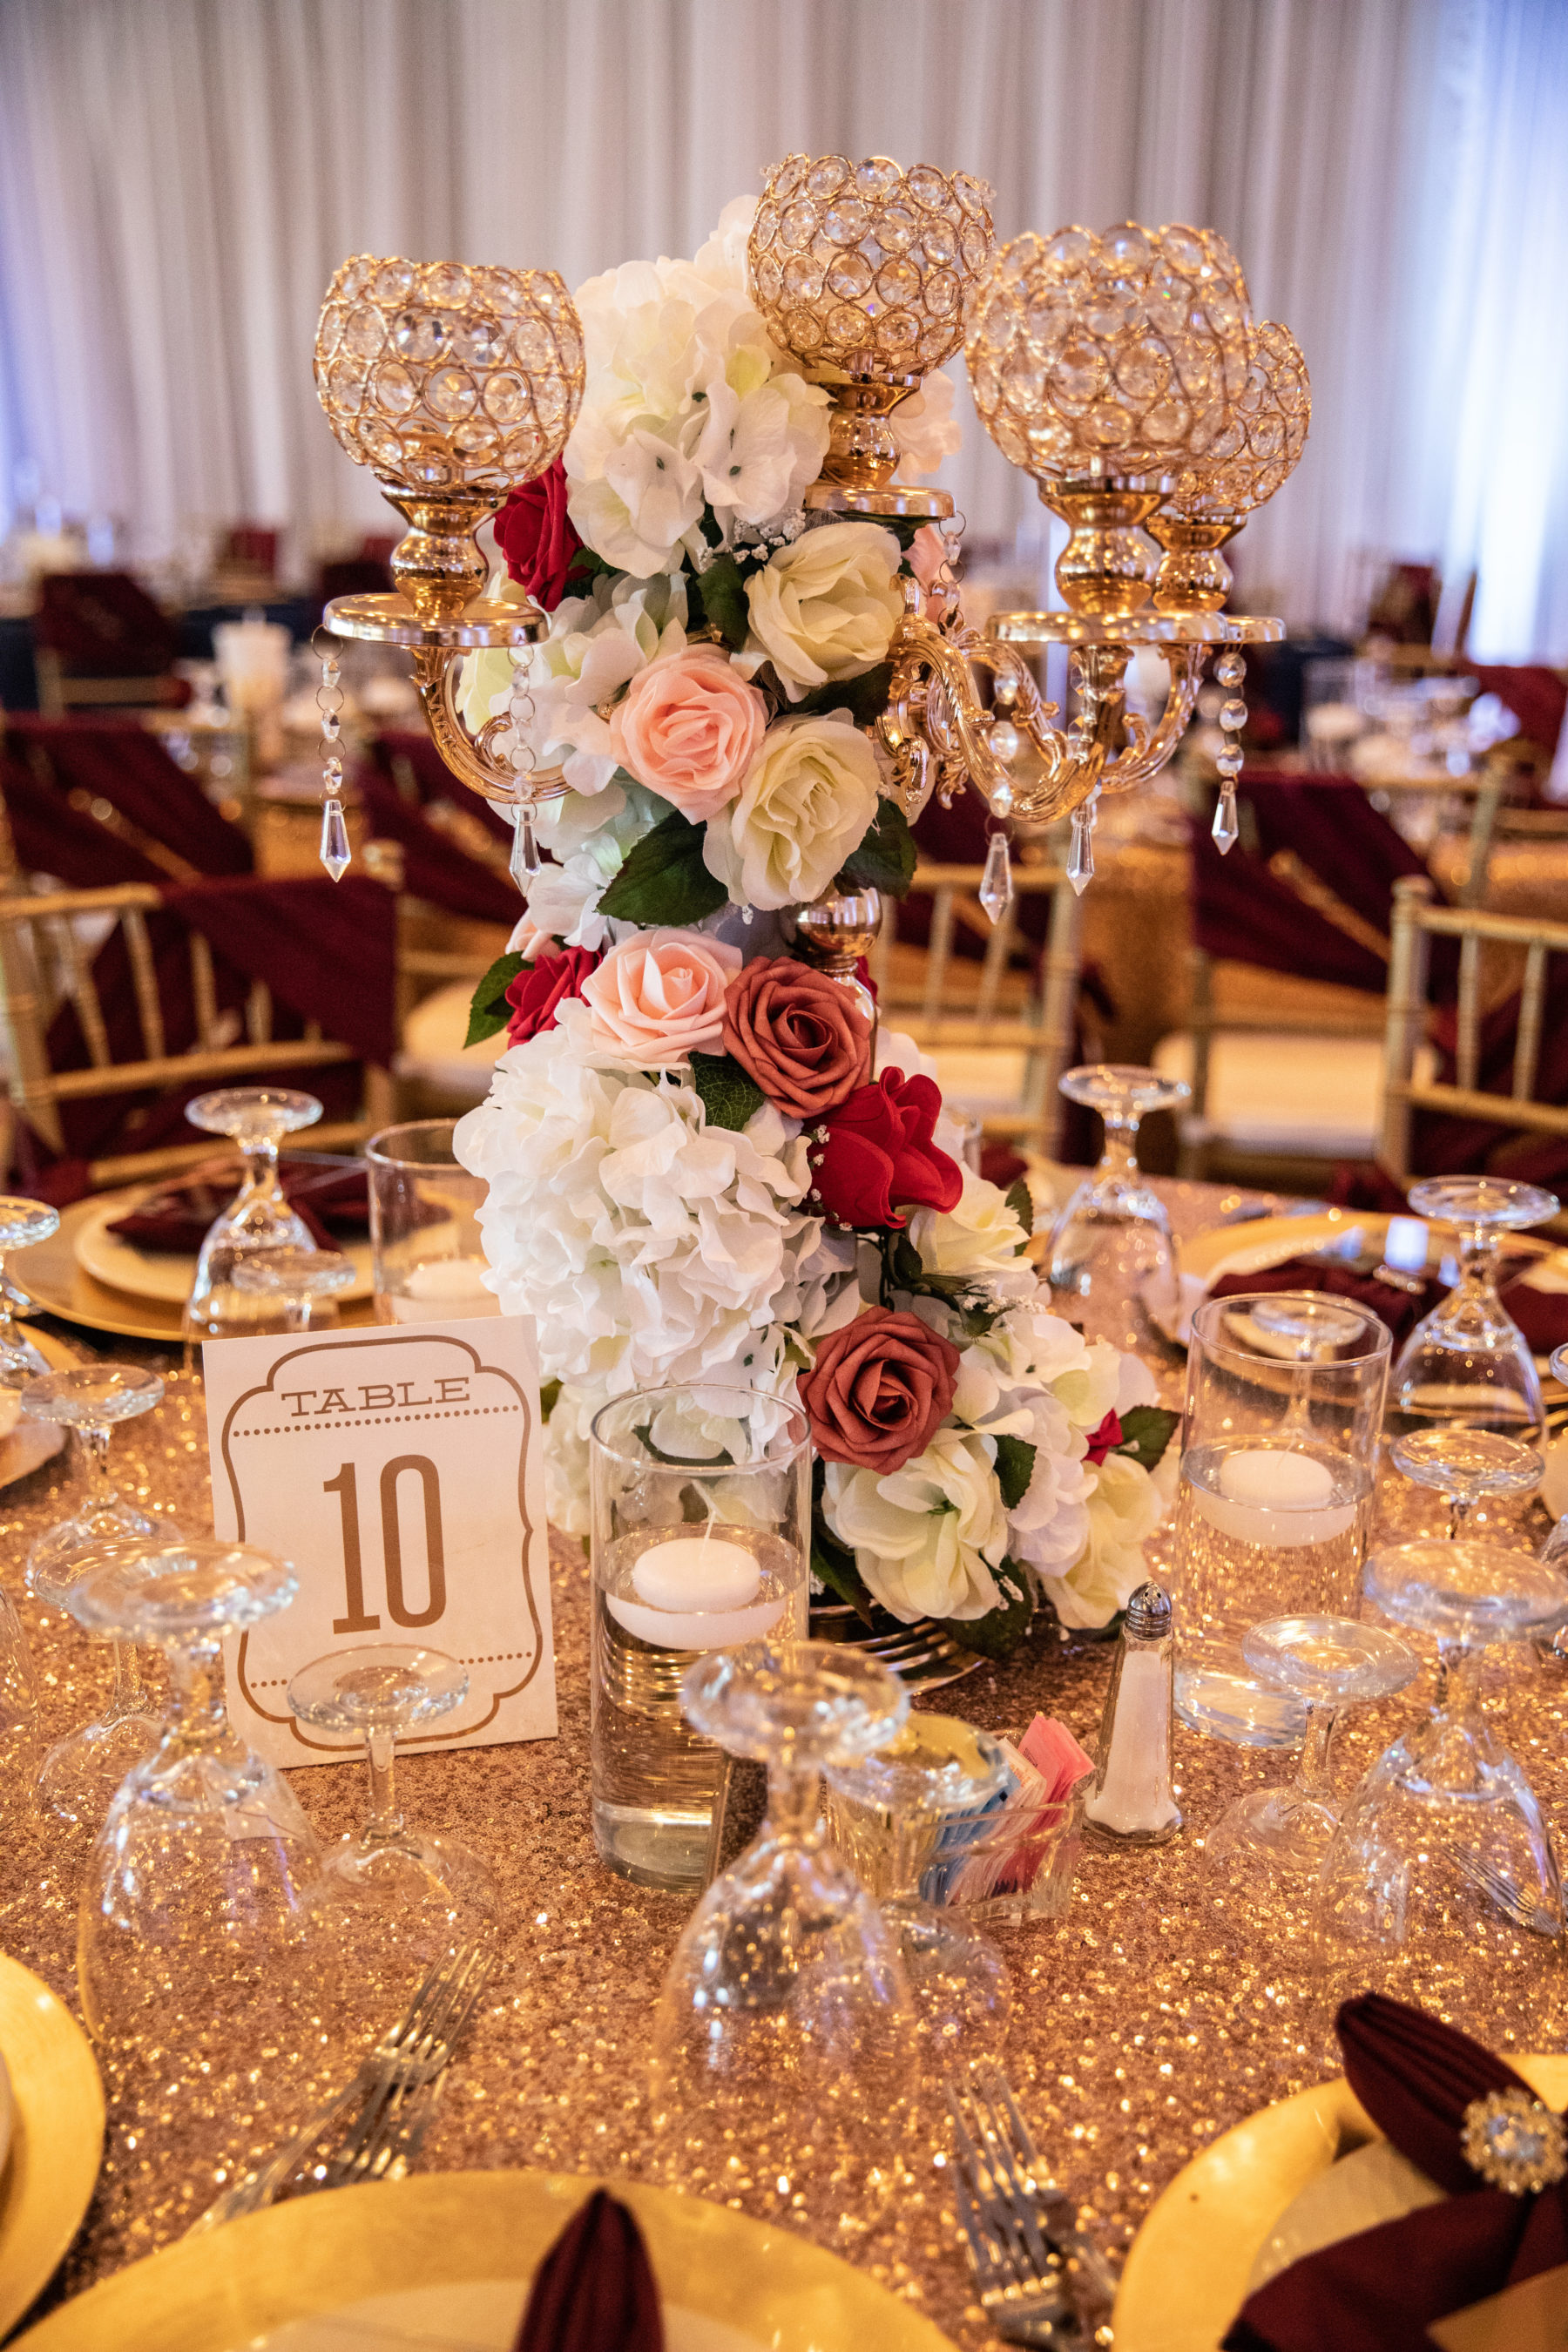 Tall lavish wedding centerpiece: Luxurious Stone Rivers Country Club Wedding featured on Nashville Bride Guide